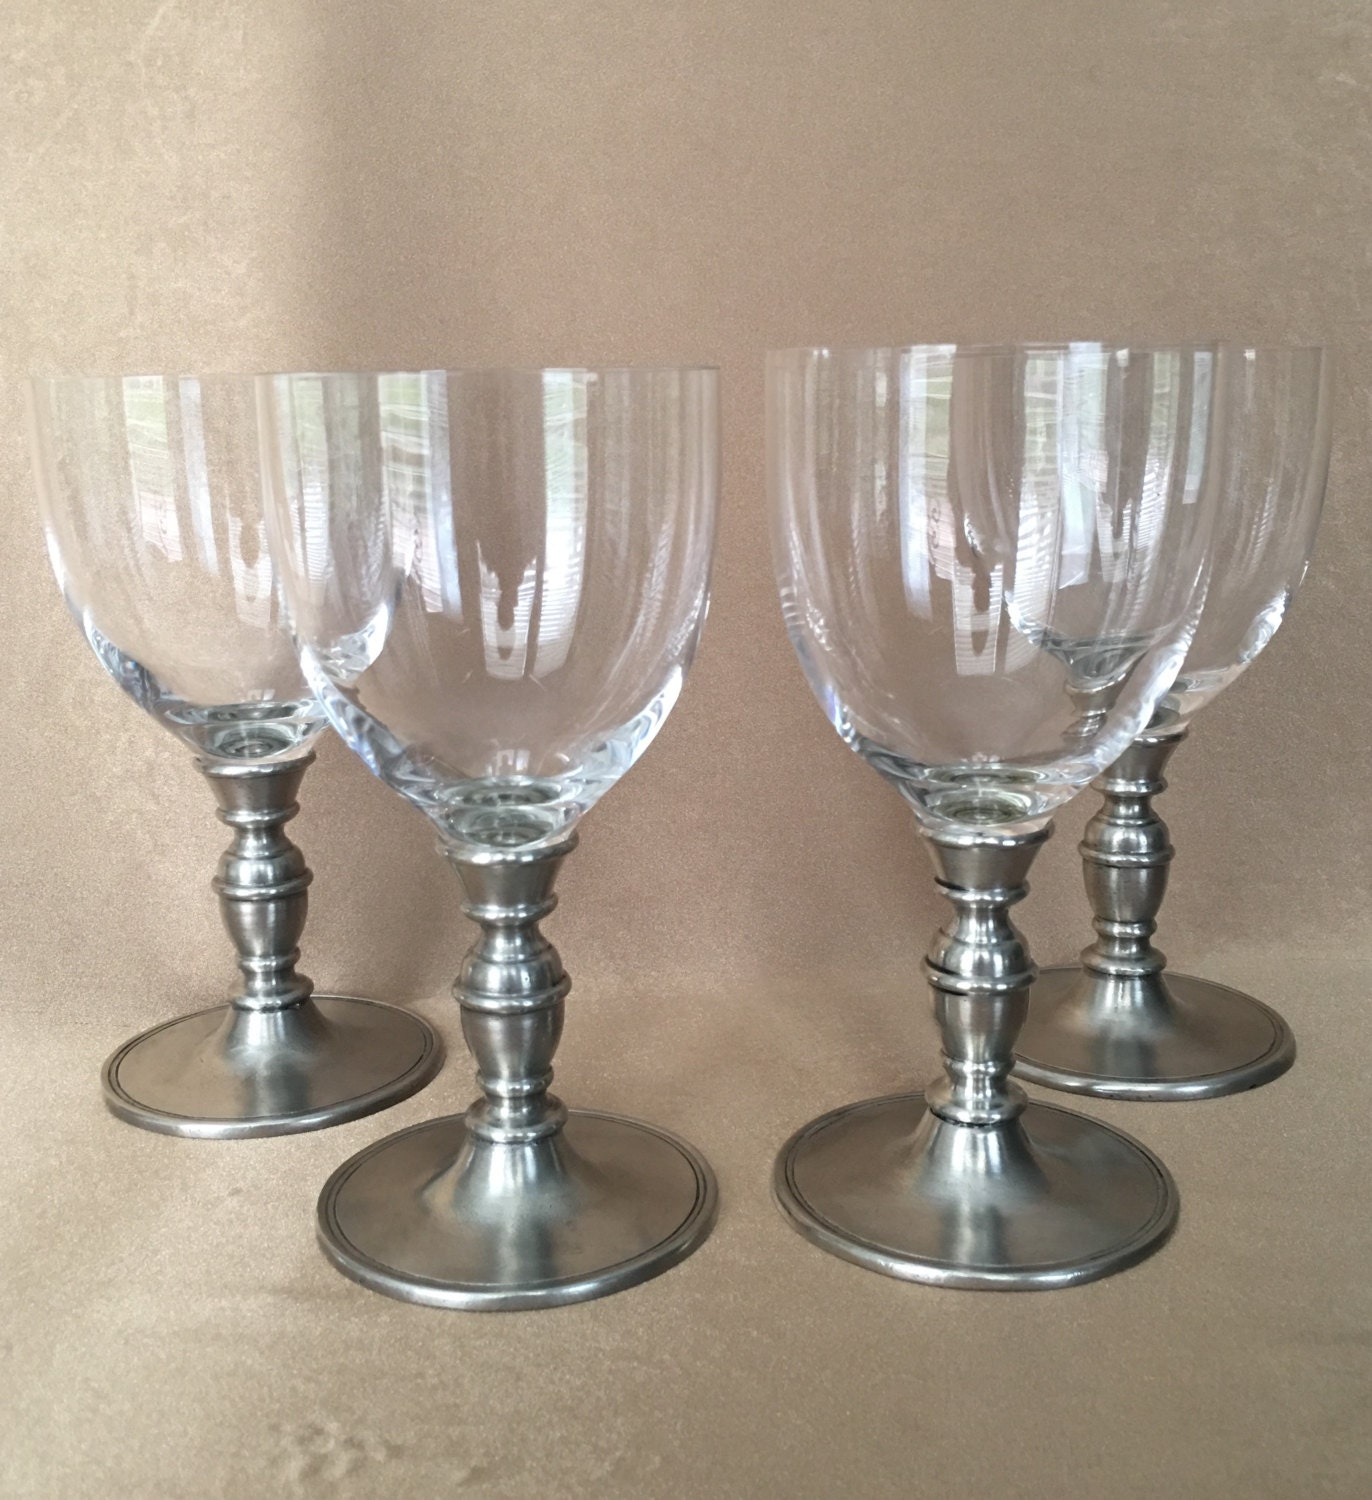 Pewter Wine Glasses Match Pewter Caterina Crystal Made In